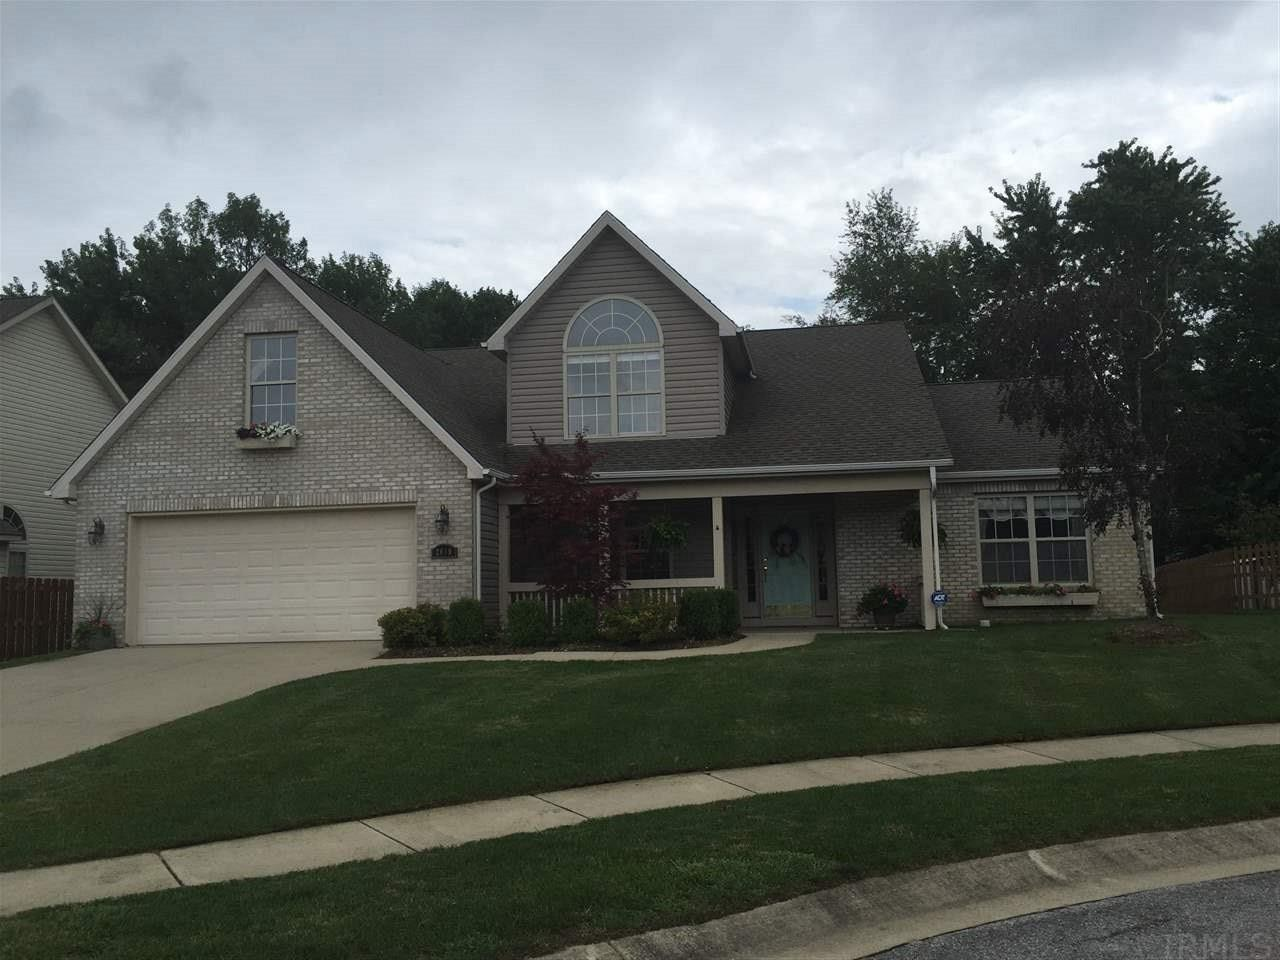 2619 Yeoman Court, West Lafayette, IN 47906